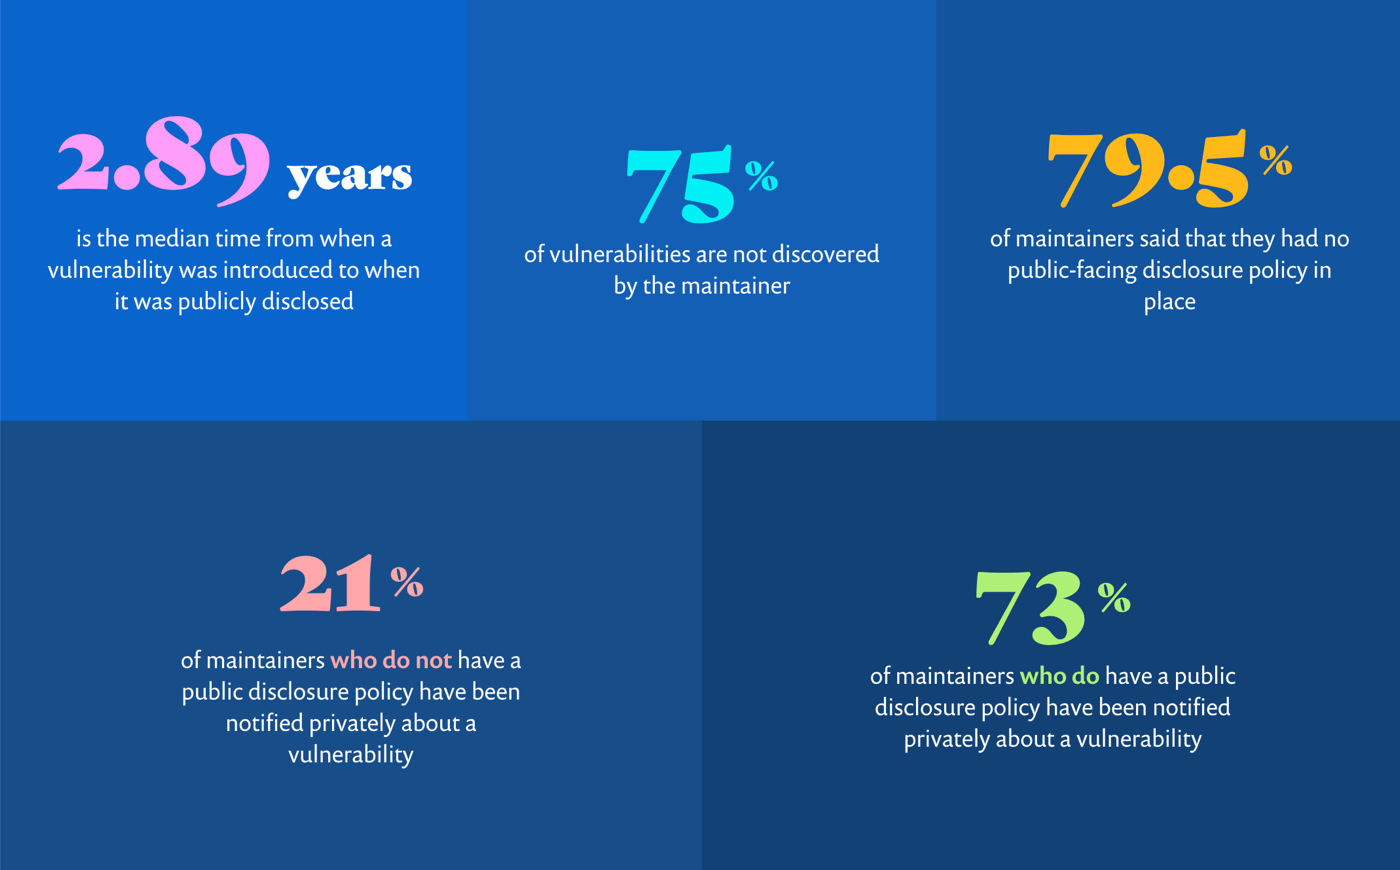 Some stats: The median time from when a vulnerability was introduced to when it was publicly disclosed is 2.89 years. 75% of vulnerabilities are not discovered by the maintainer. 79.5% of maintainers said that they had no public-facing disclosure policy in place. 21% of maintainers who do not have a public disclosure policy have been notified privately about a vulnerability. 73% of maintainers who do have a public disclosure policy have been notified privately about a vulnerability.